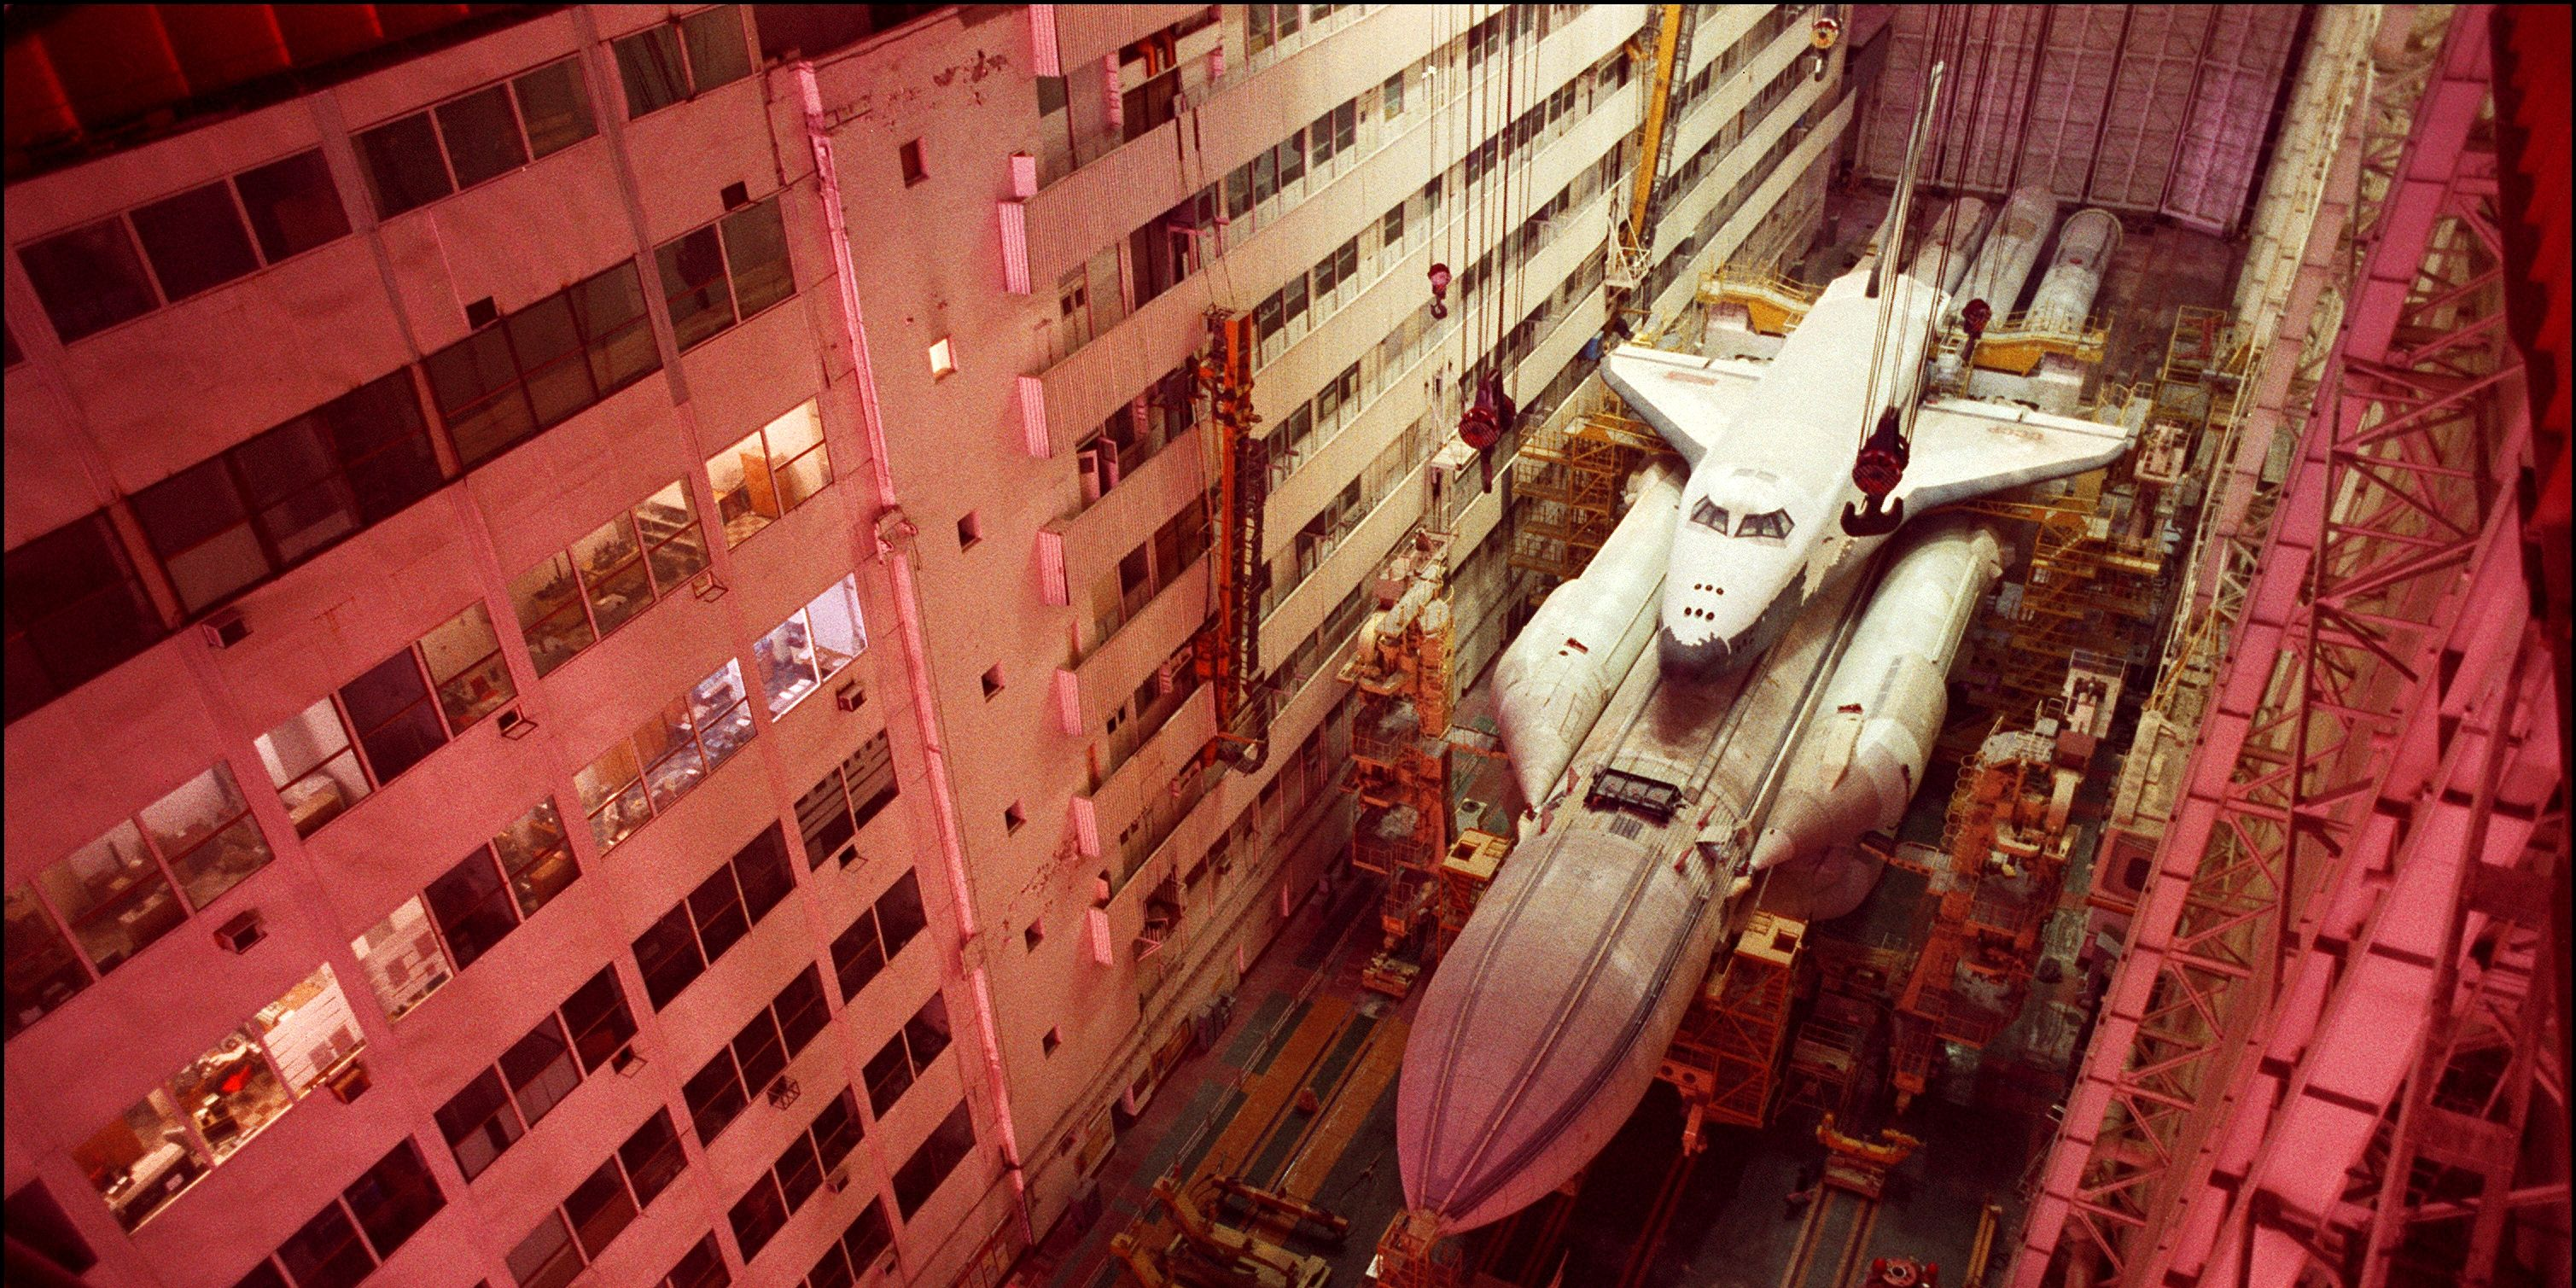 The Buran Space Shuttle And The Energia Rocket in the Baikonur Cosmodrome in Kazakhstan on November 22, 1999.